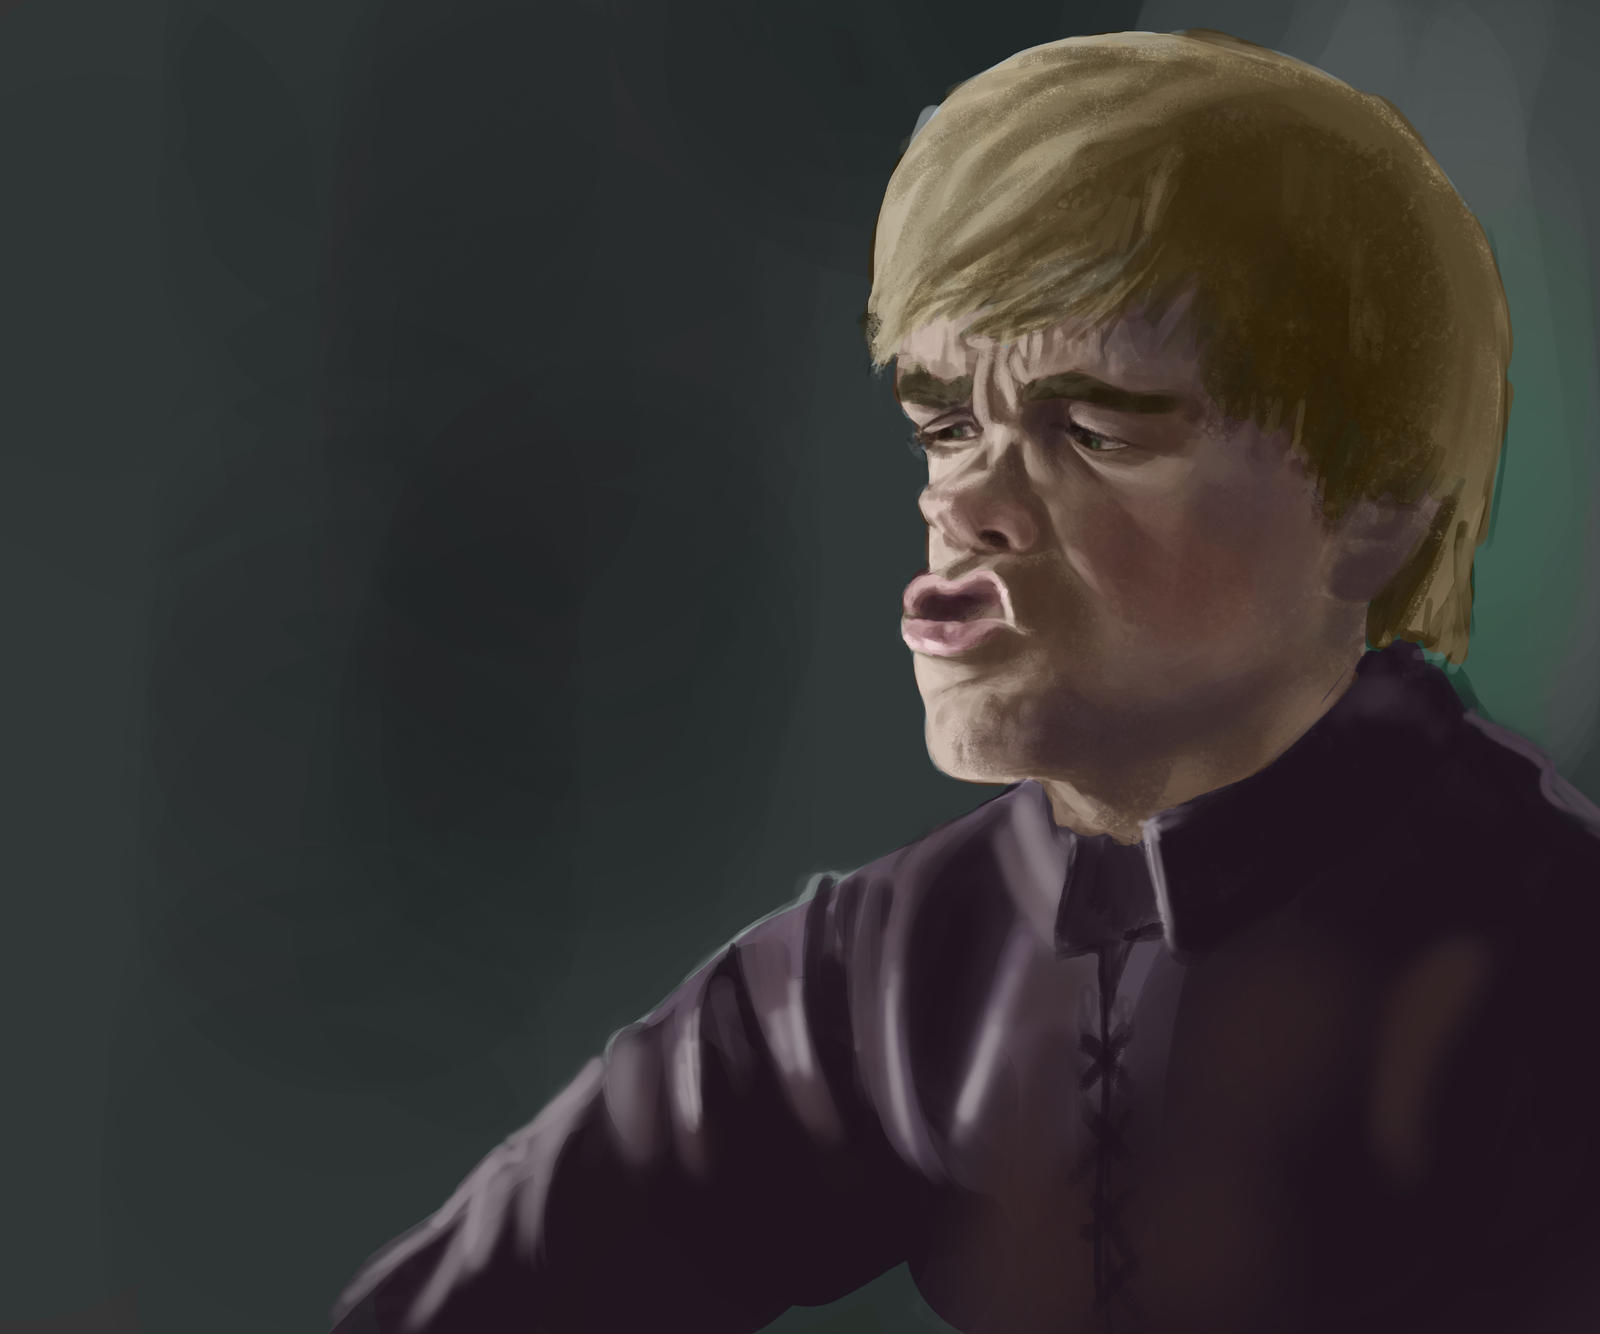 Tyrion Lannister by GregMartin1991Tyrion Lannister Fan Art